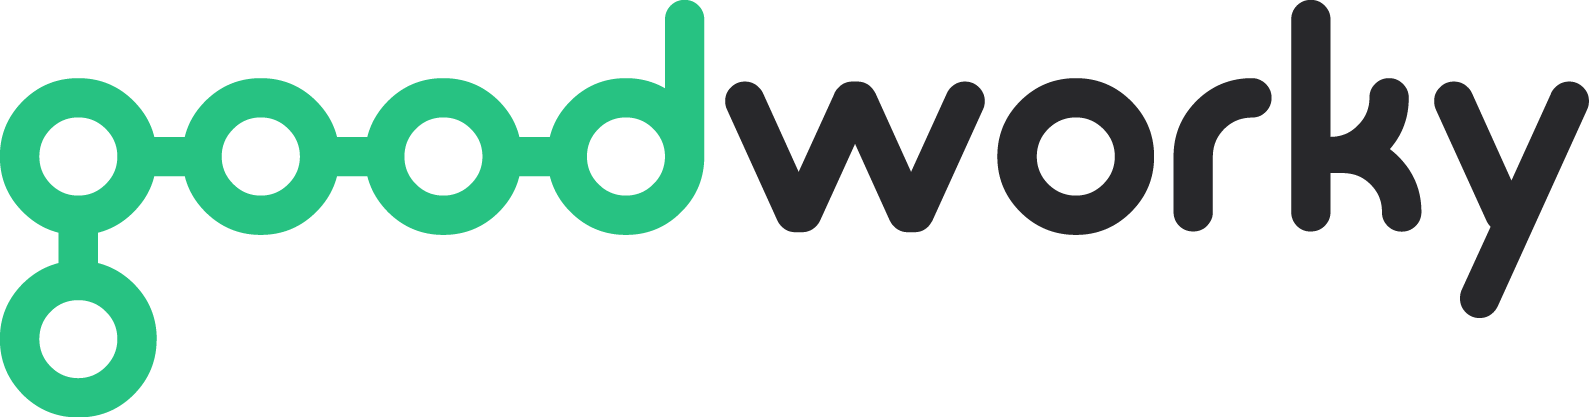 Goodworky - logo